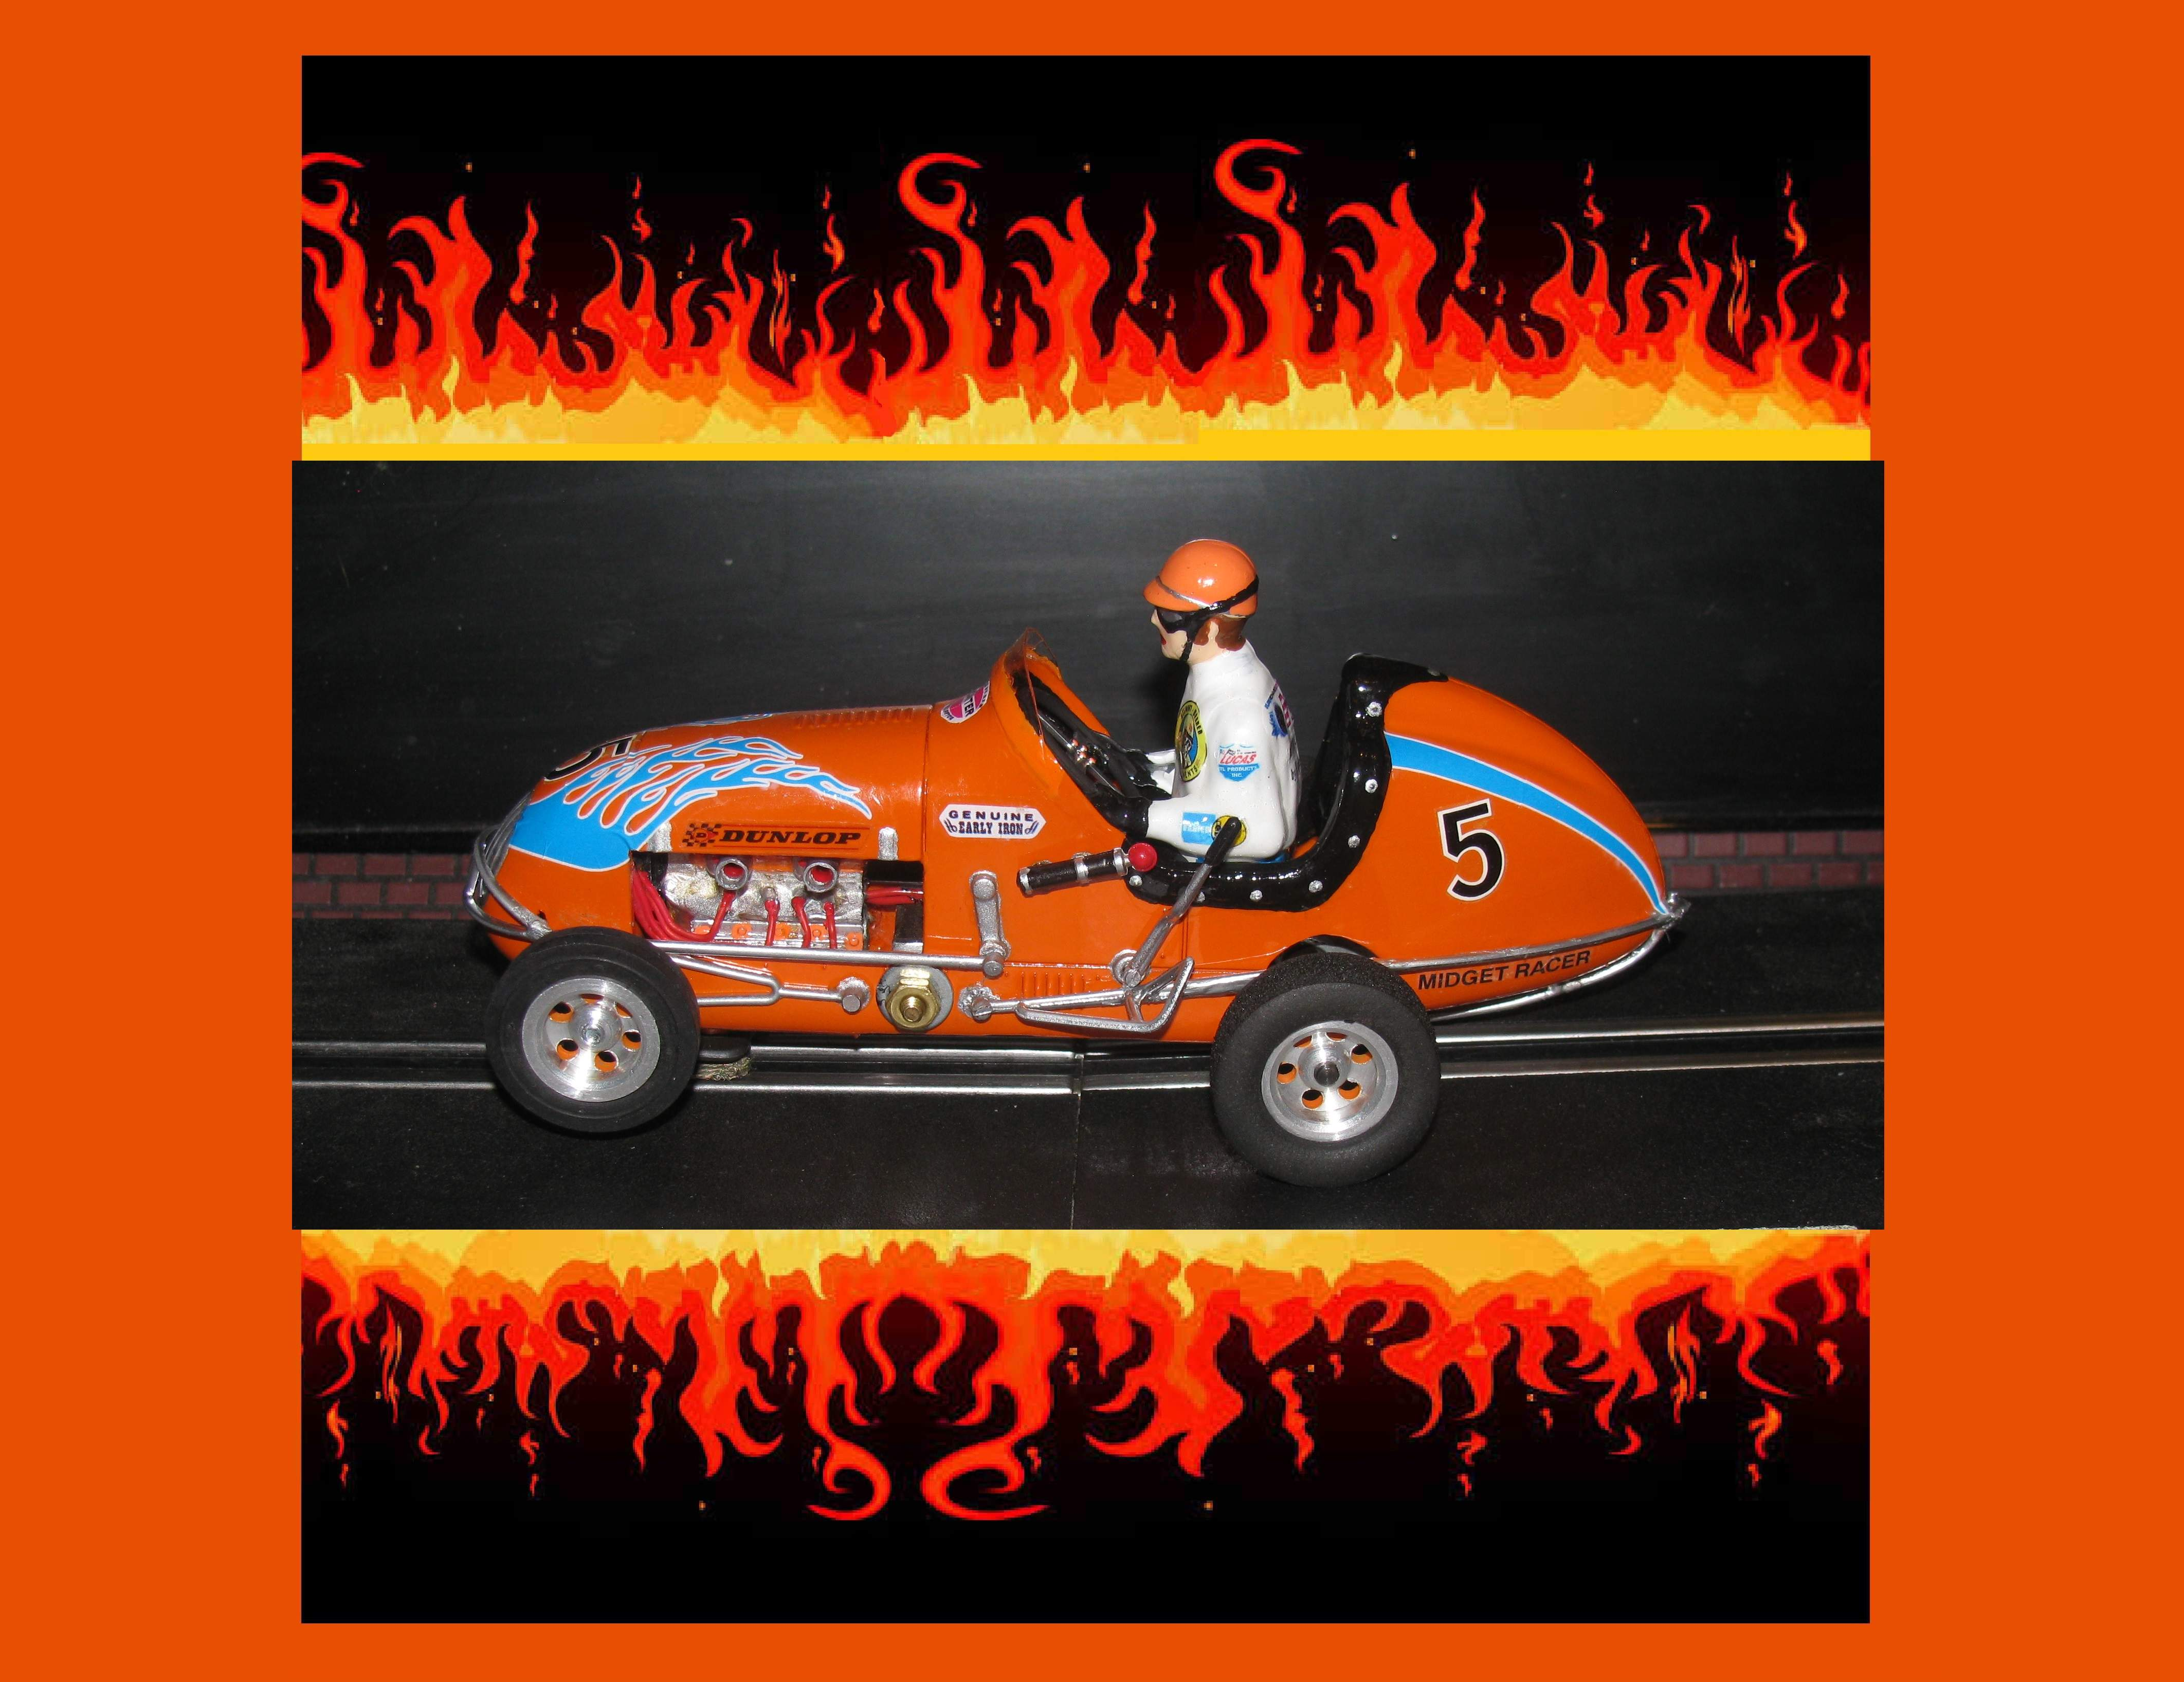 * SOLD * Midget Racer Hot Orange Kurtis Racing Special Slot Car 1:24 Scale Car #5